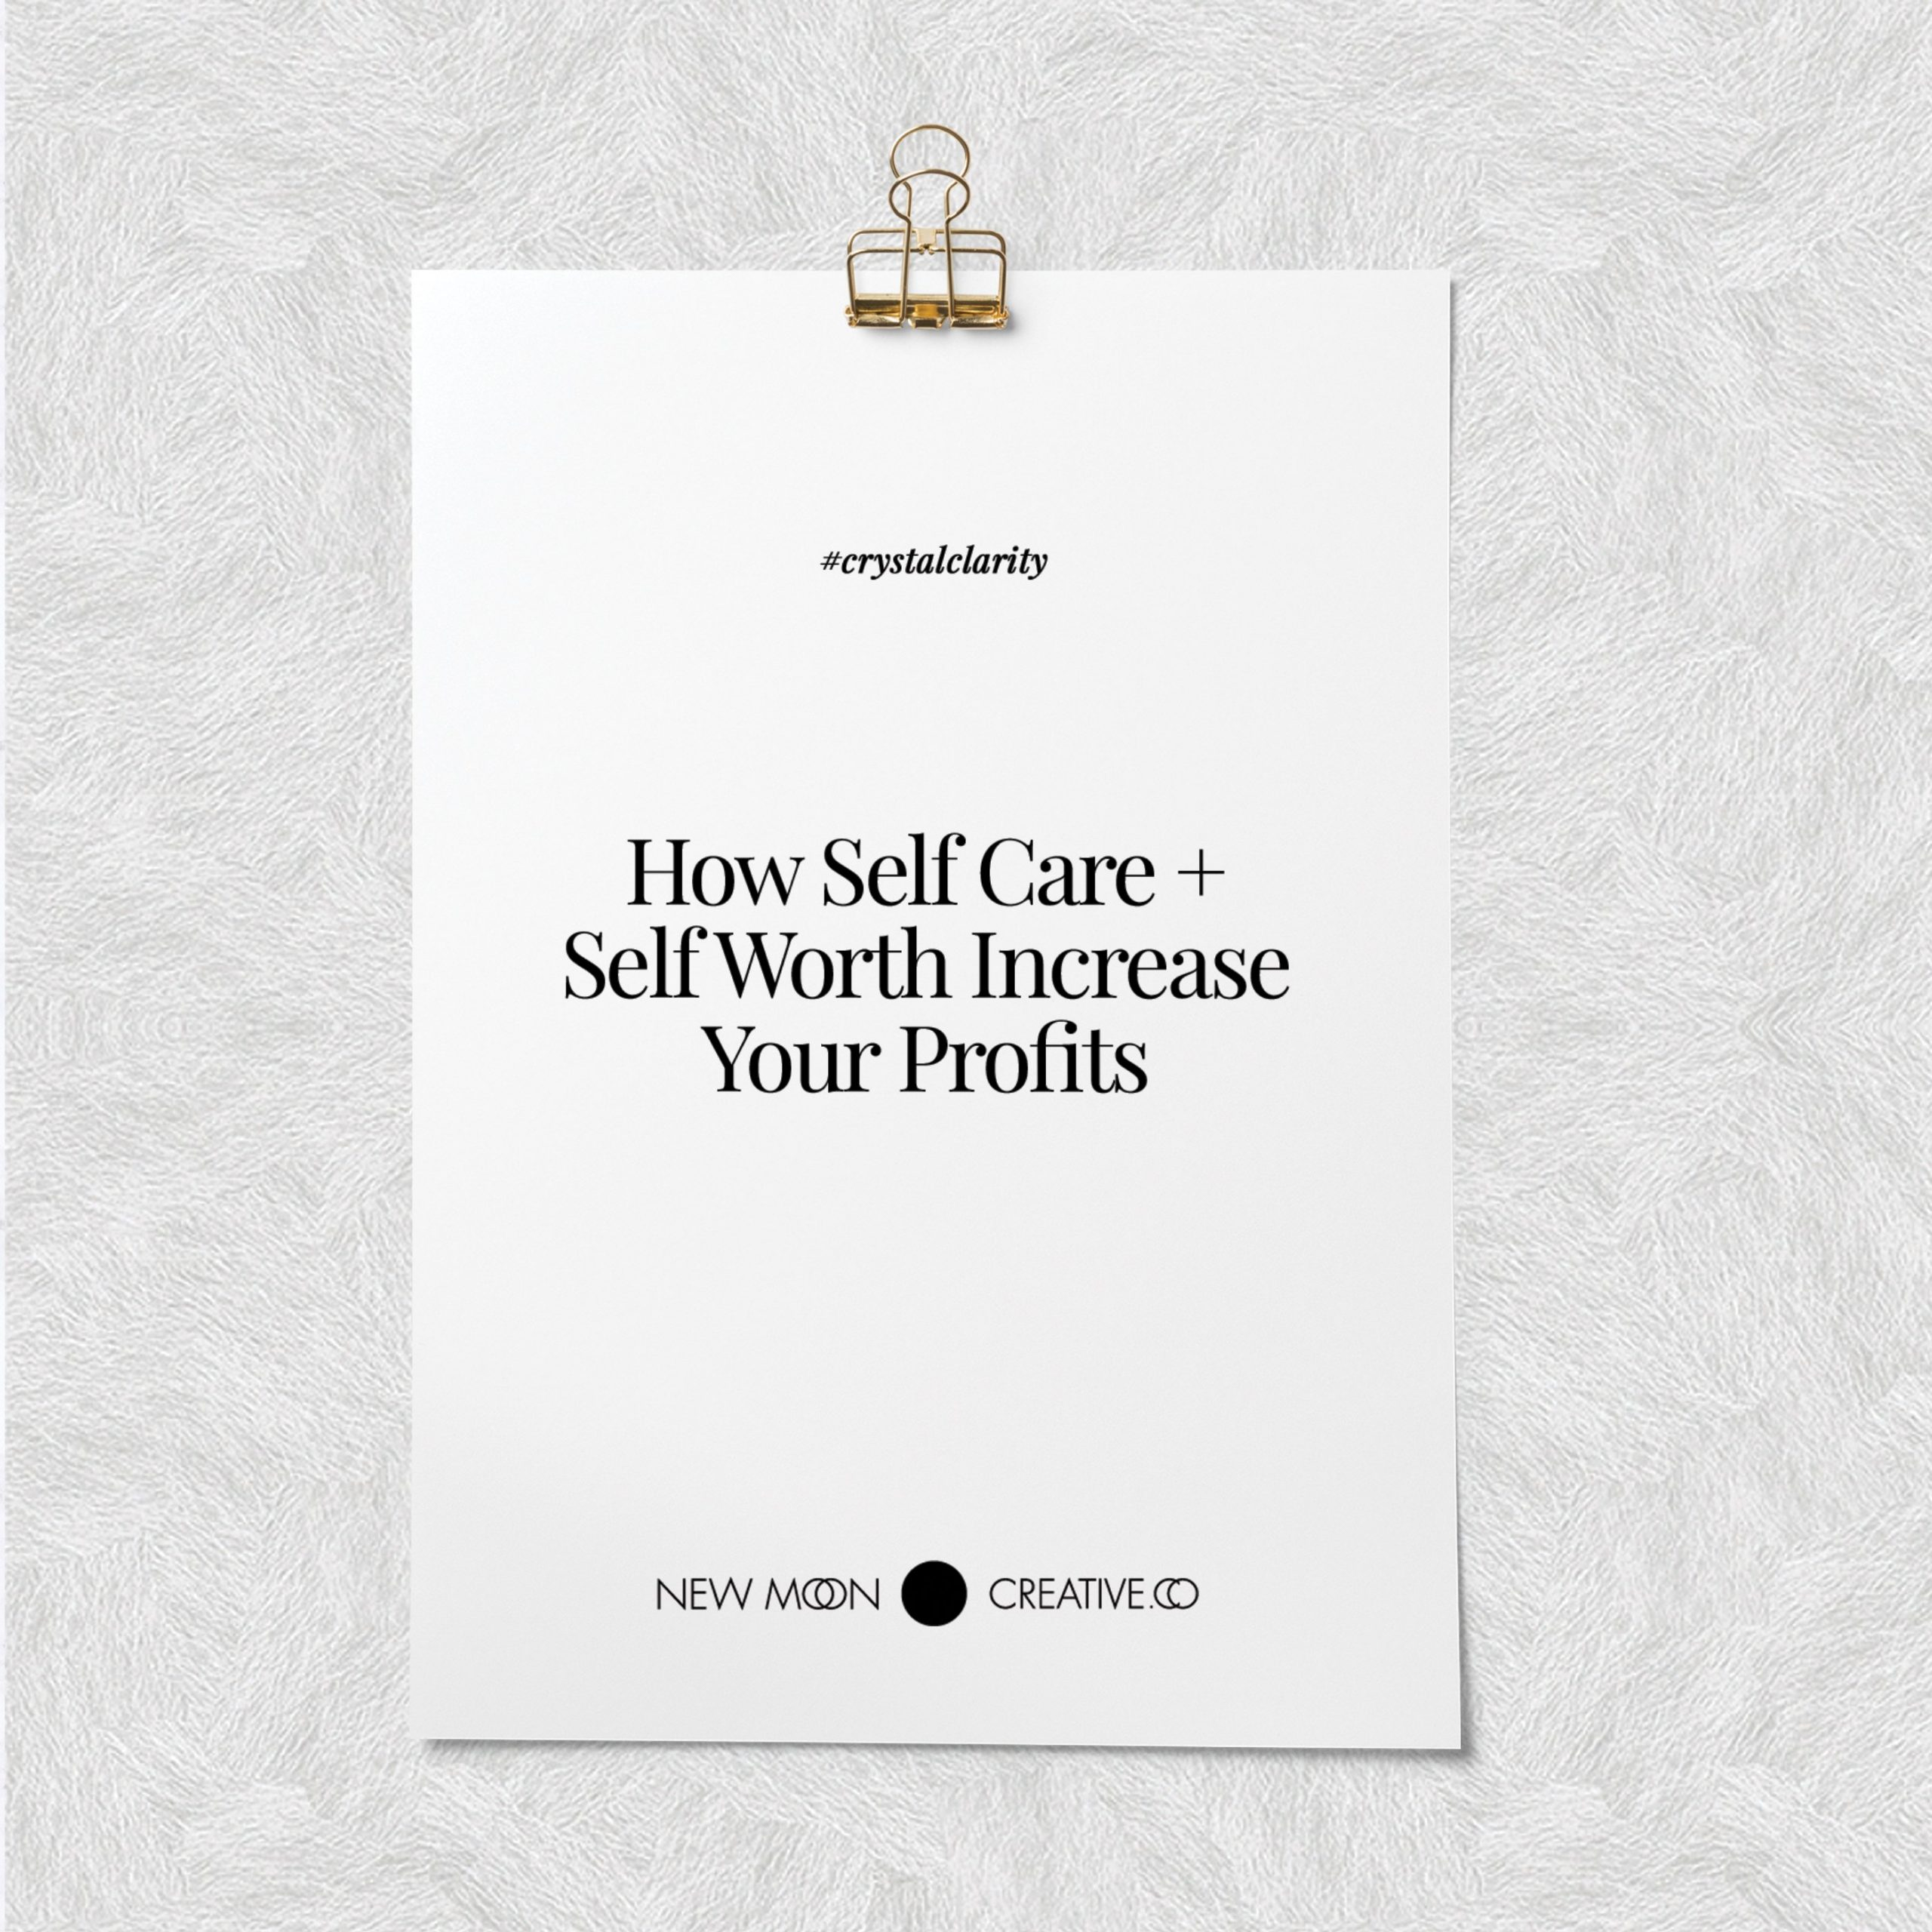 How Self Care + Self Worth Increase Your Profits